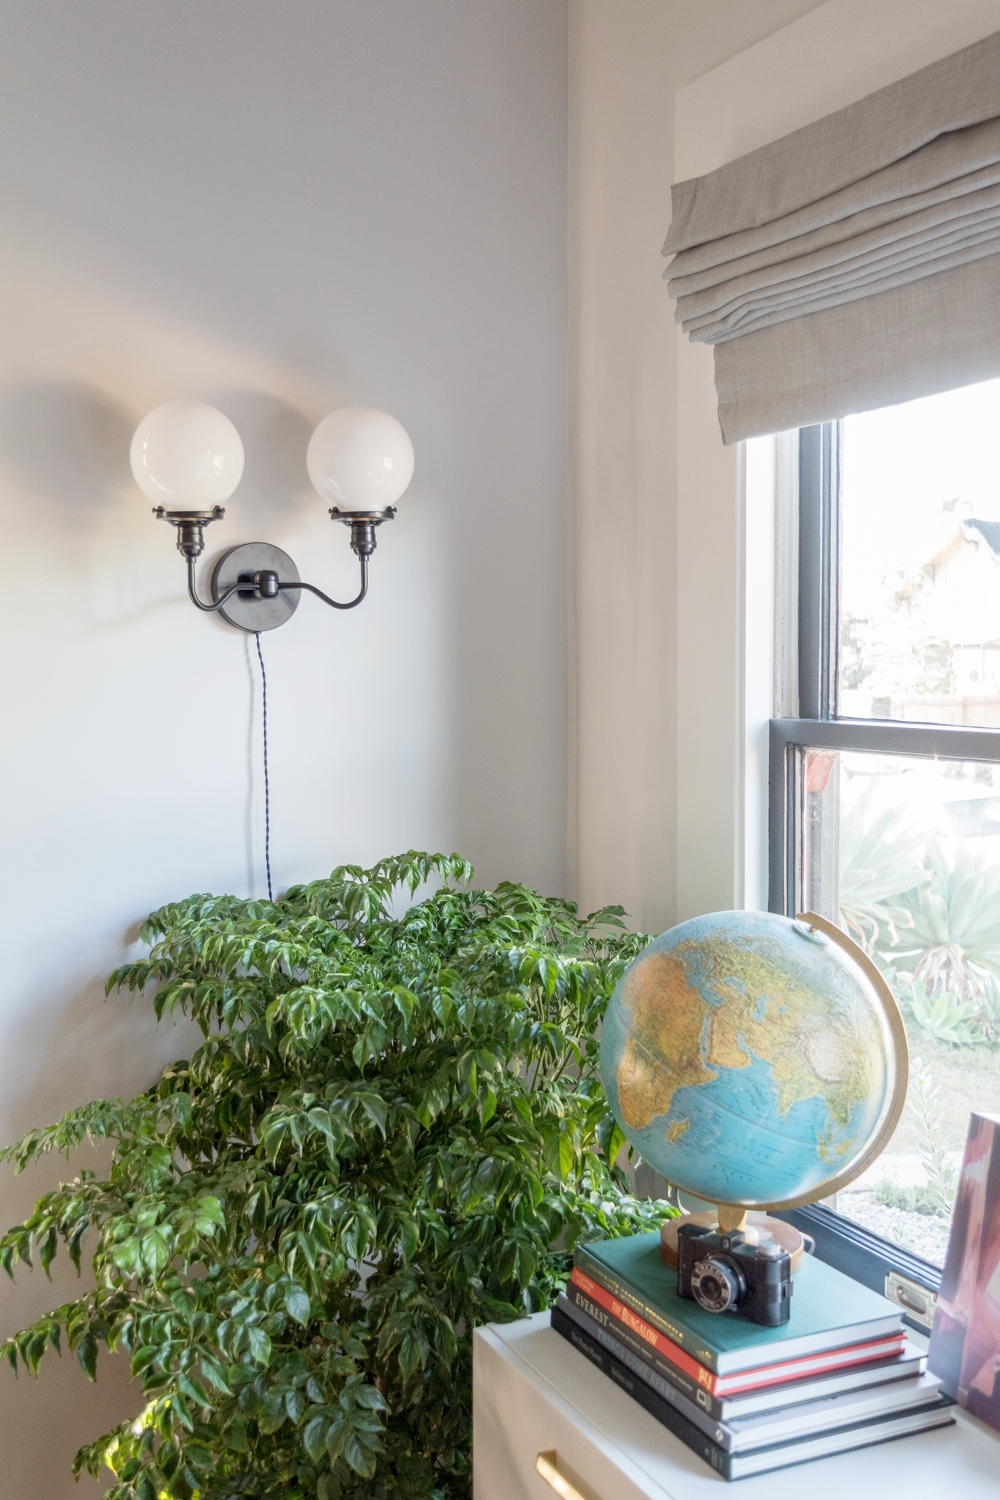 Pretty cord for wall-mounted light fixture instead of hiding it